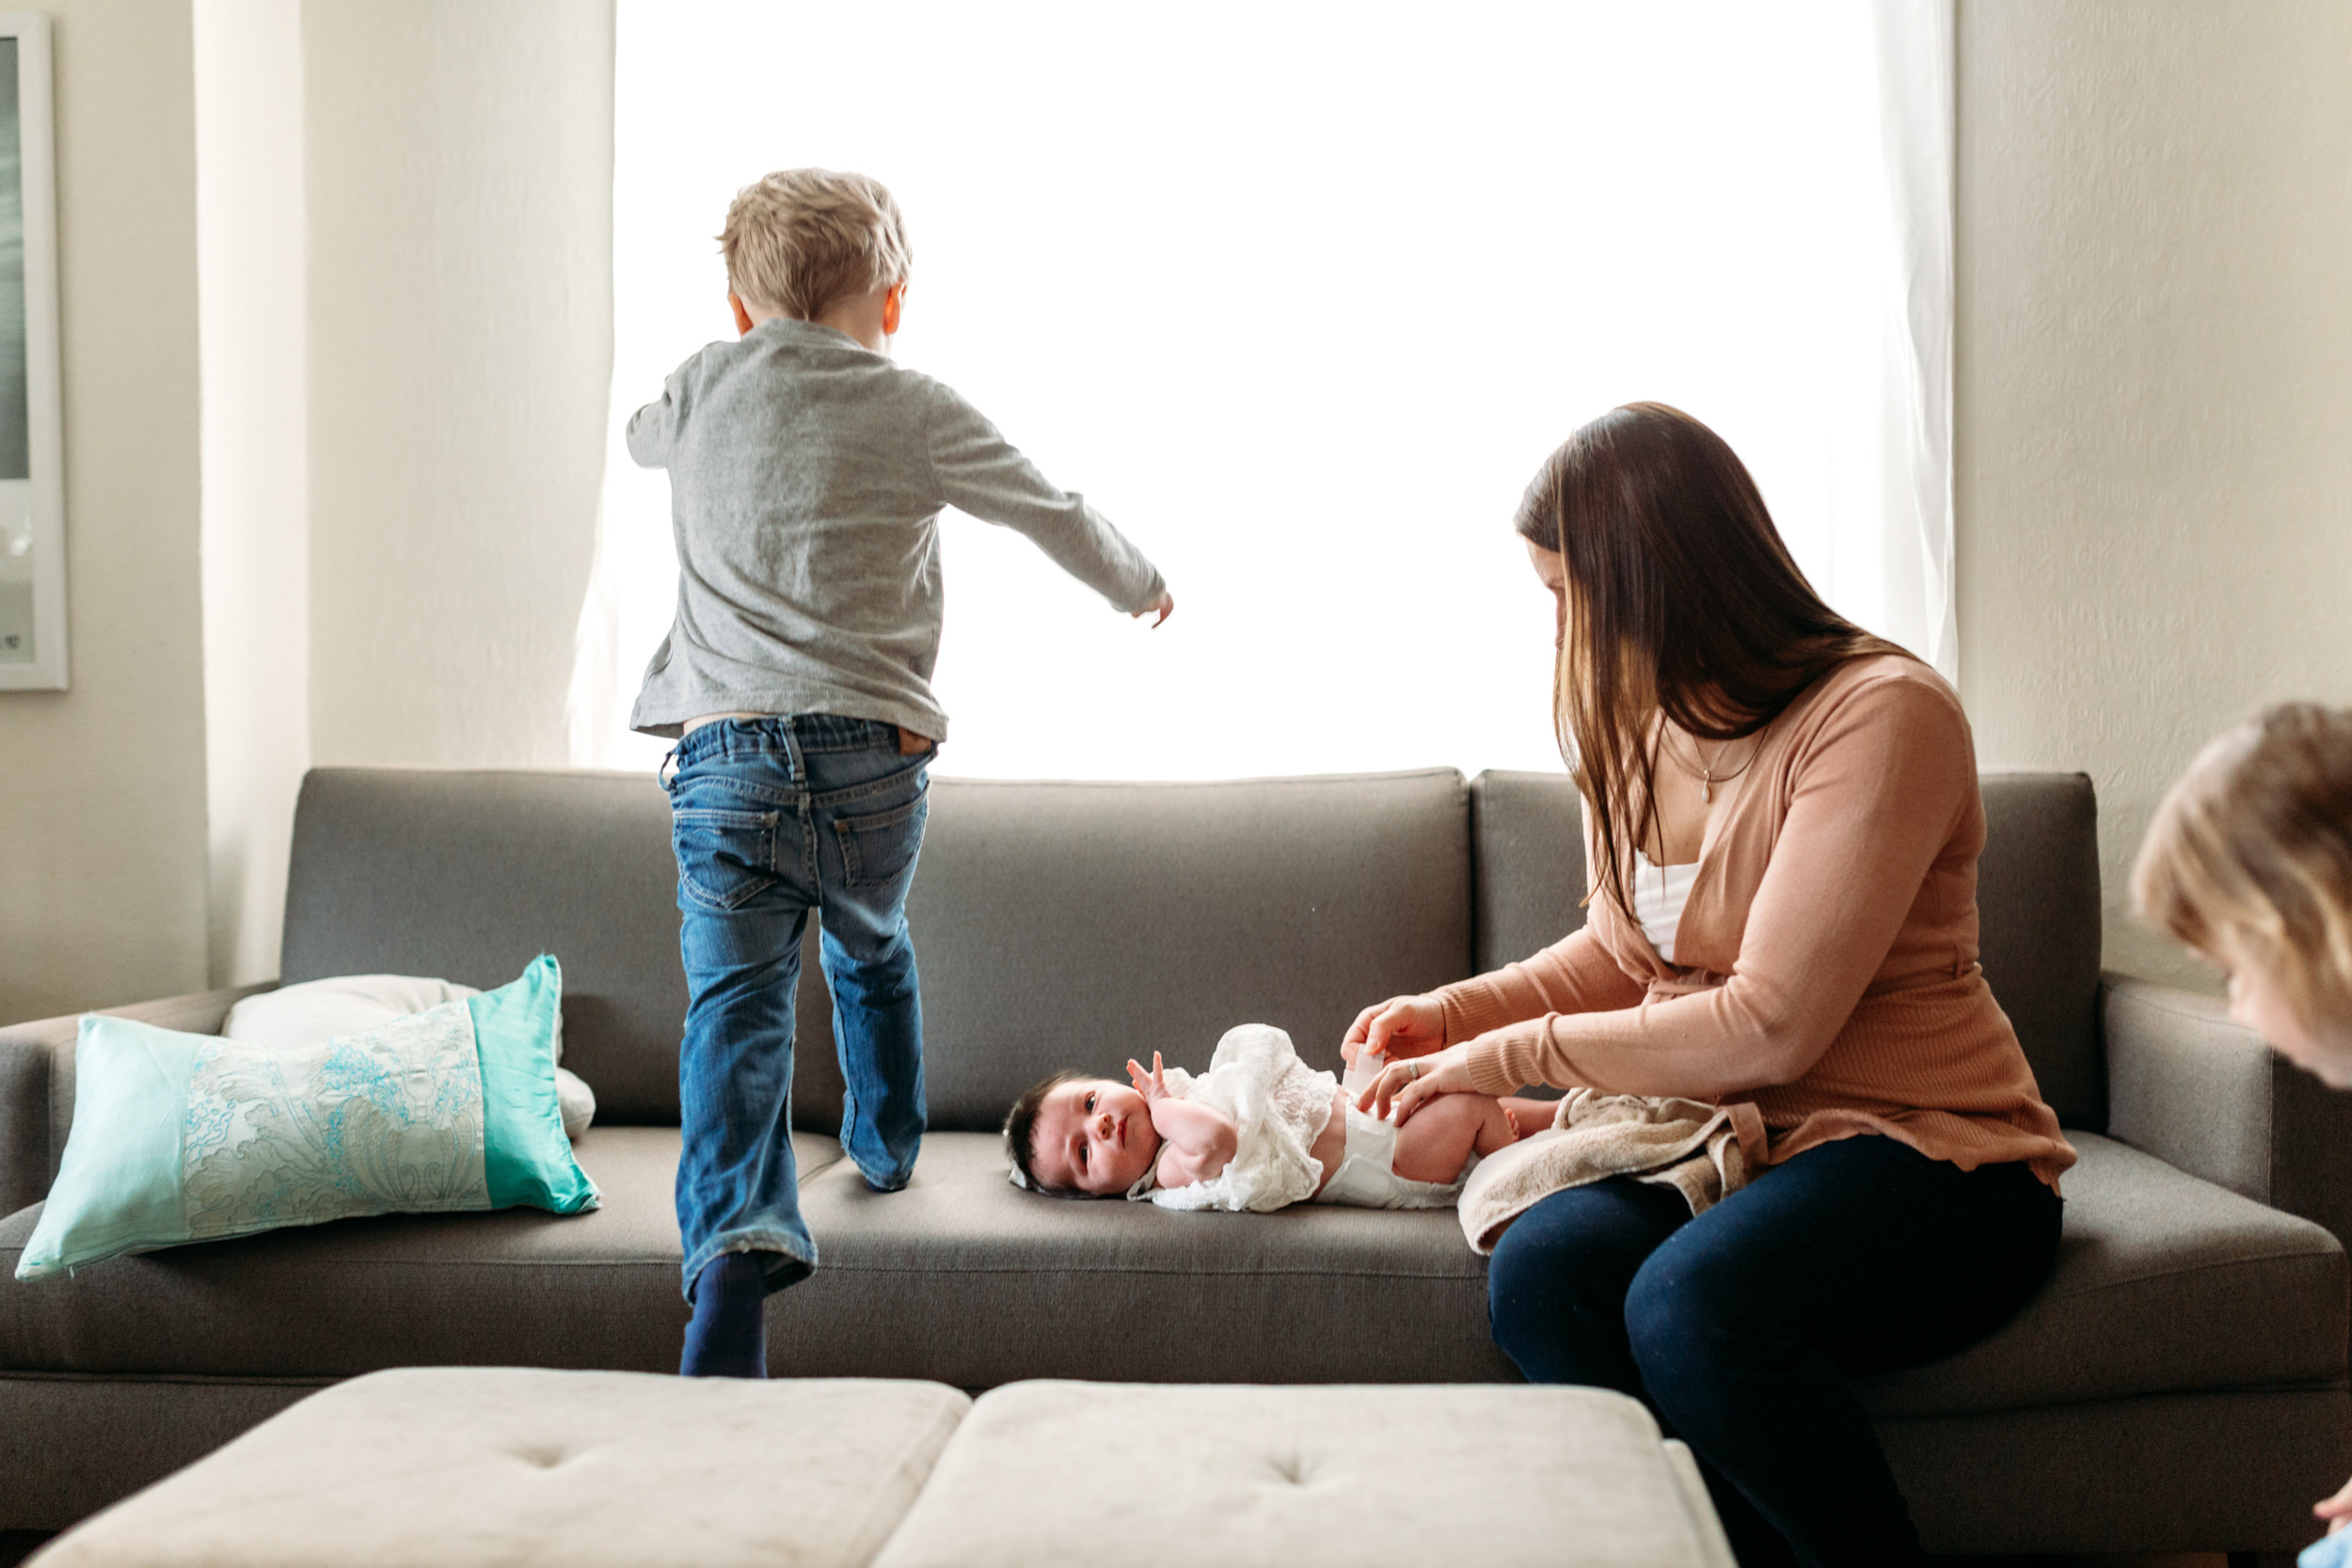 kid jumping on the couch nearly missing his baby sister